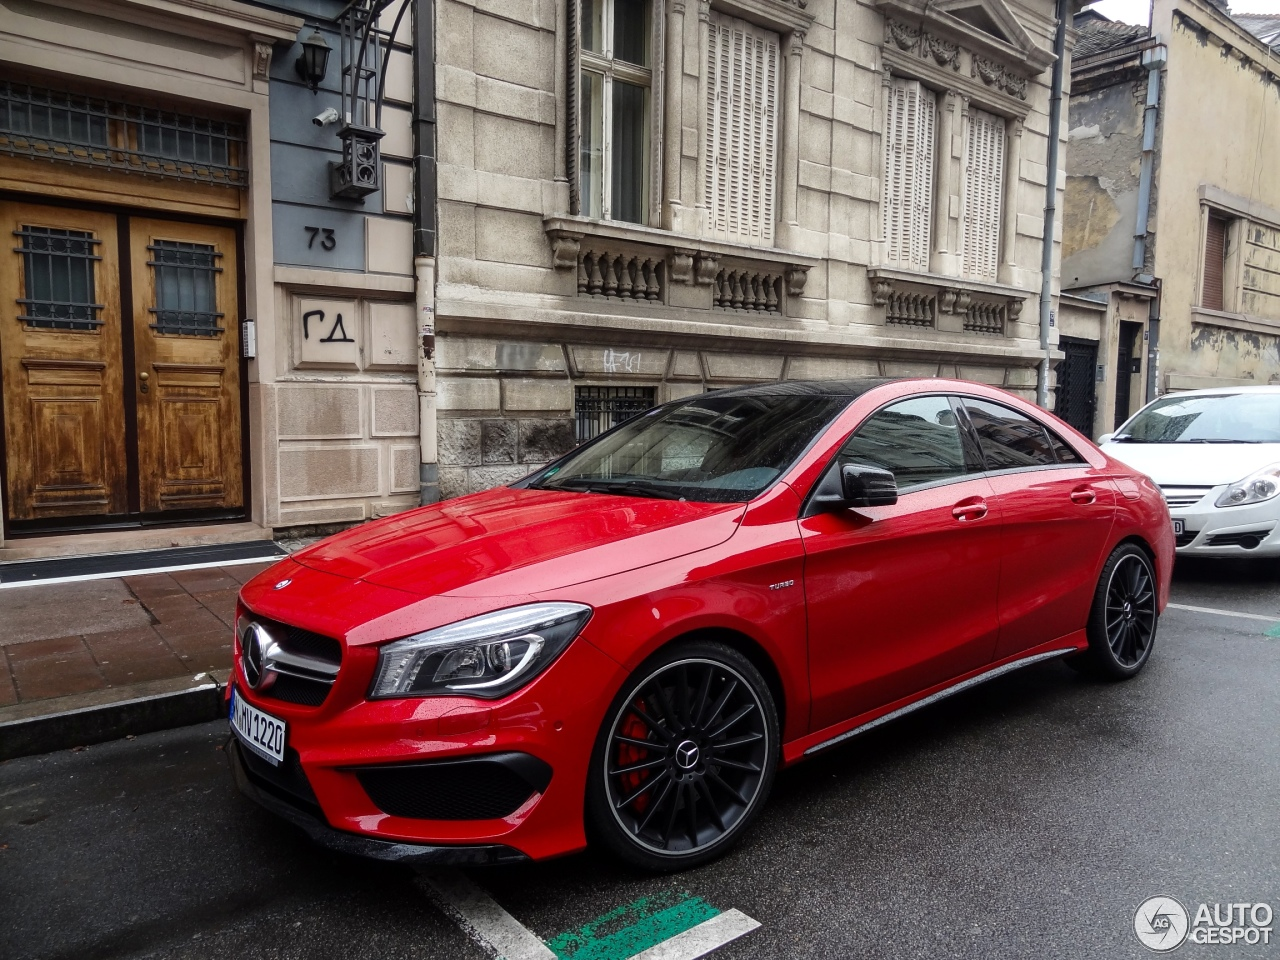 Mercedes benz cla 45 amg c117 19 january 2015 autogespot for Mercedes benz amg cla 45